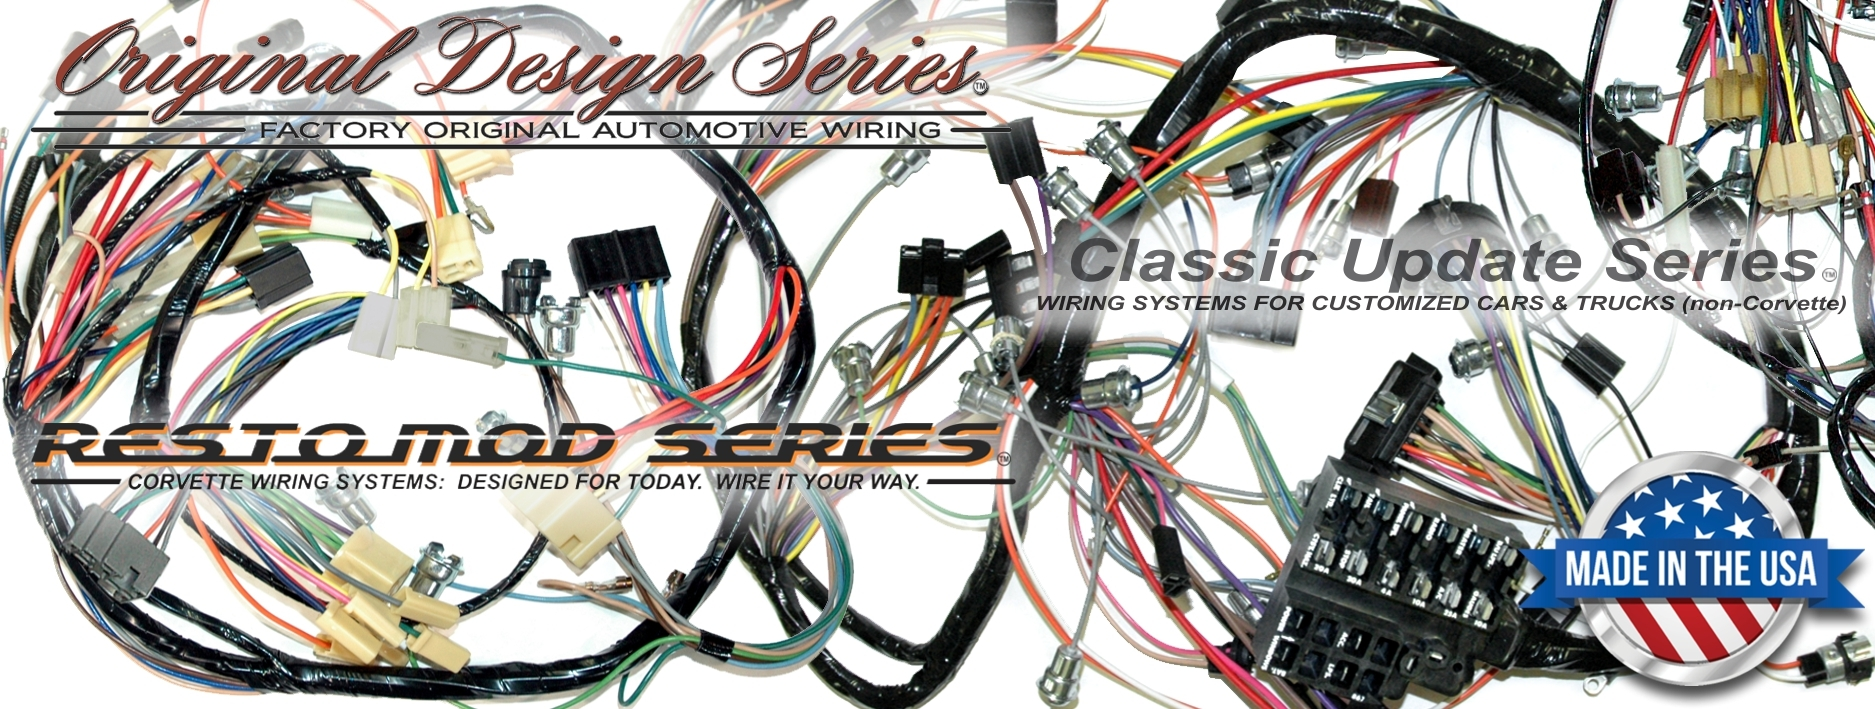 Wiring Harness For Vintage Cars : Exact oem reproduction wiring harnesses and restomod